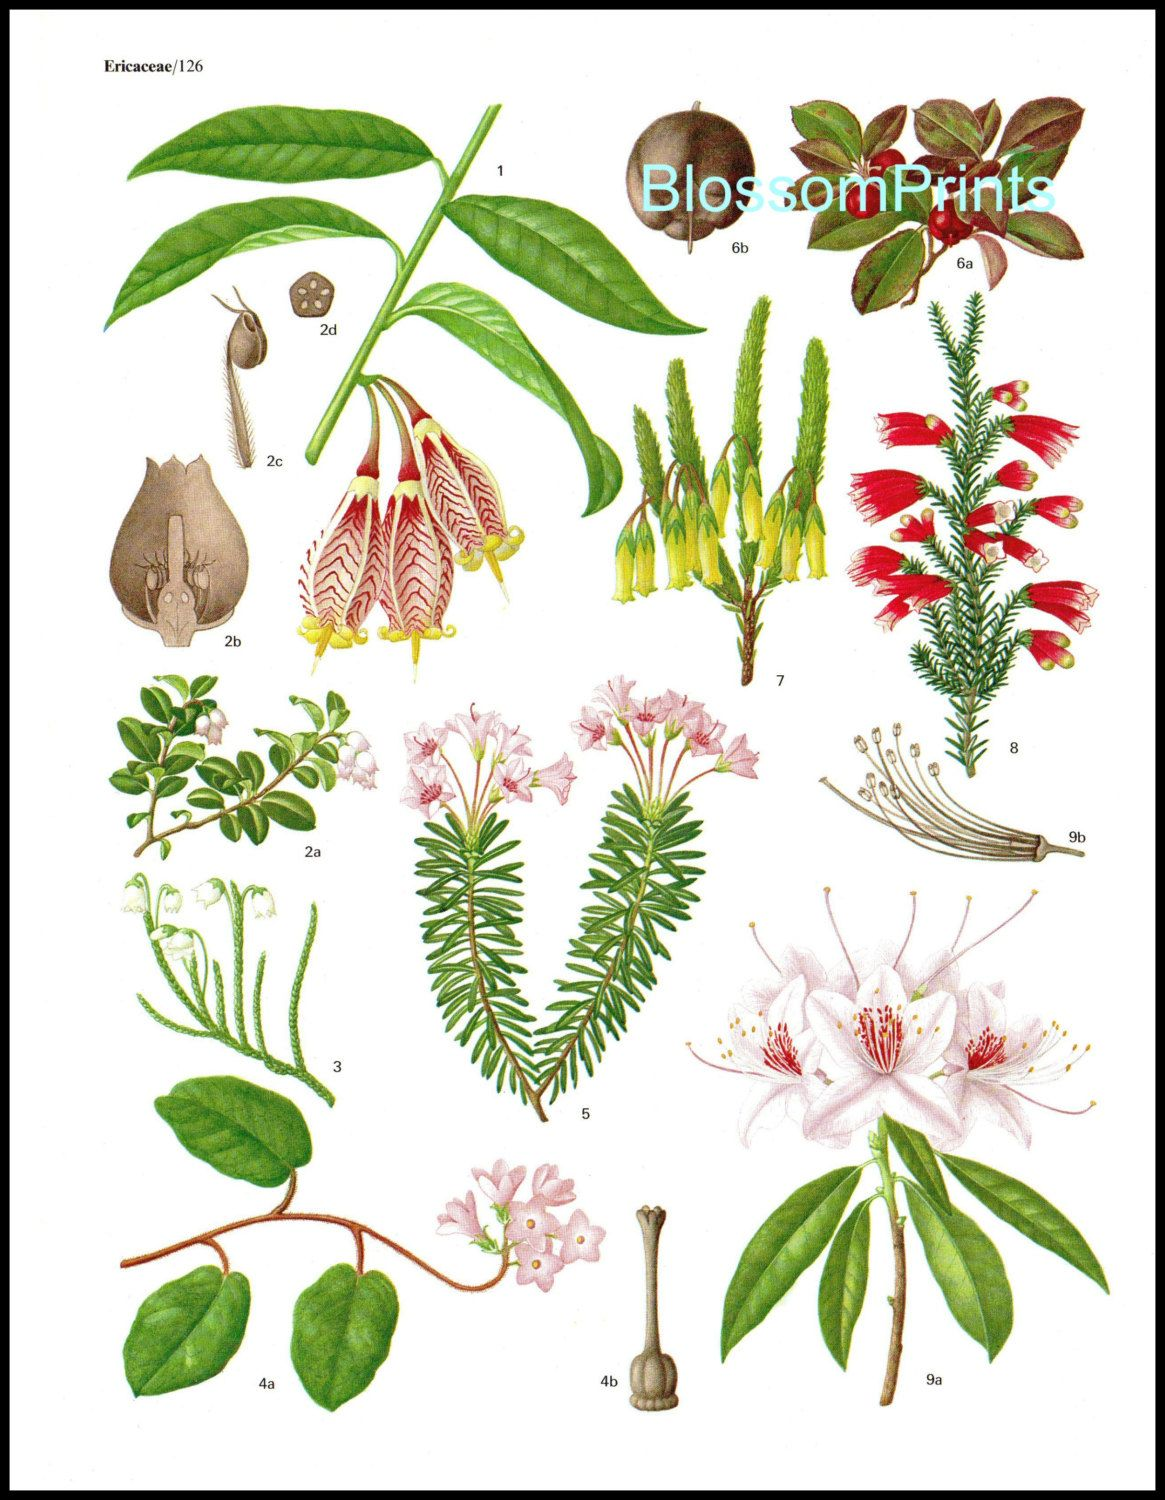 Ericaceae The Family Heath Rhododendron From The Book Flowering Plants Of The World Plate 9 Planting Flowers Plants Rhododendron